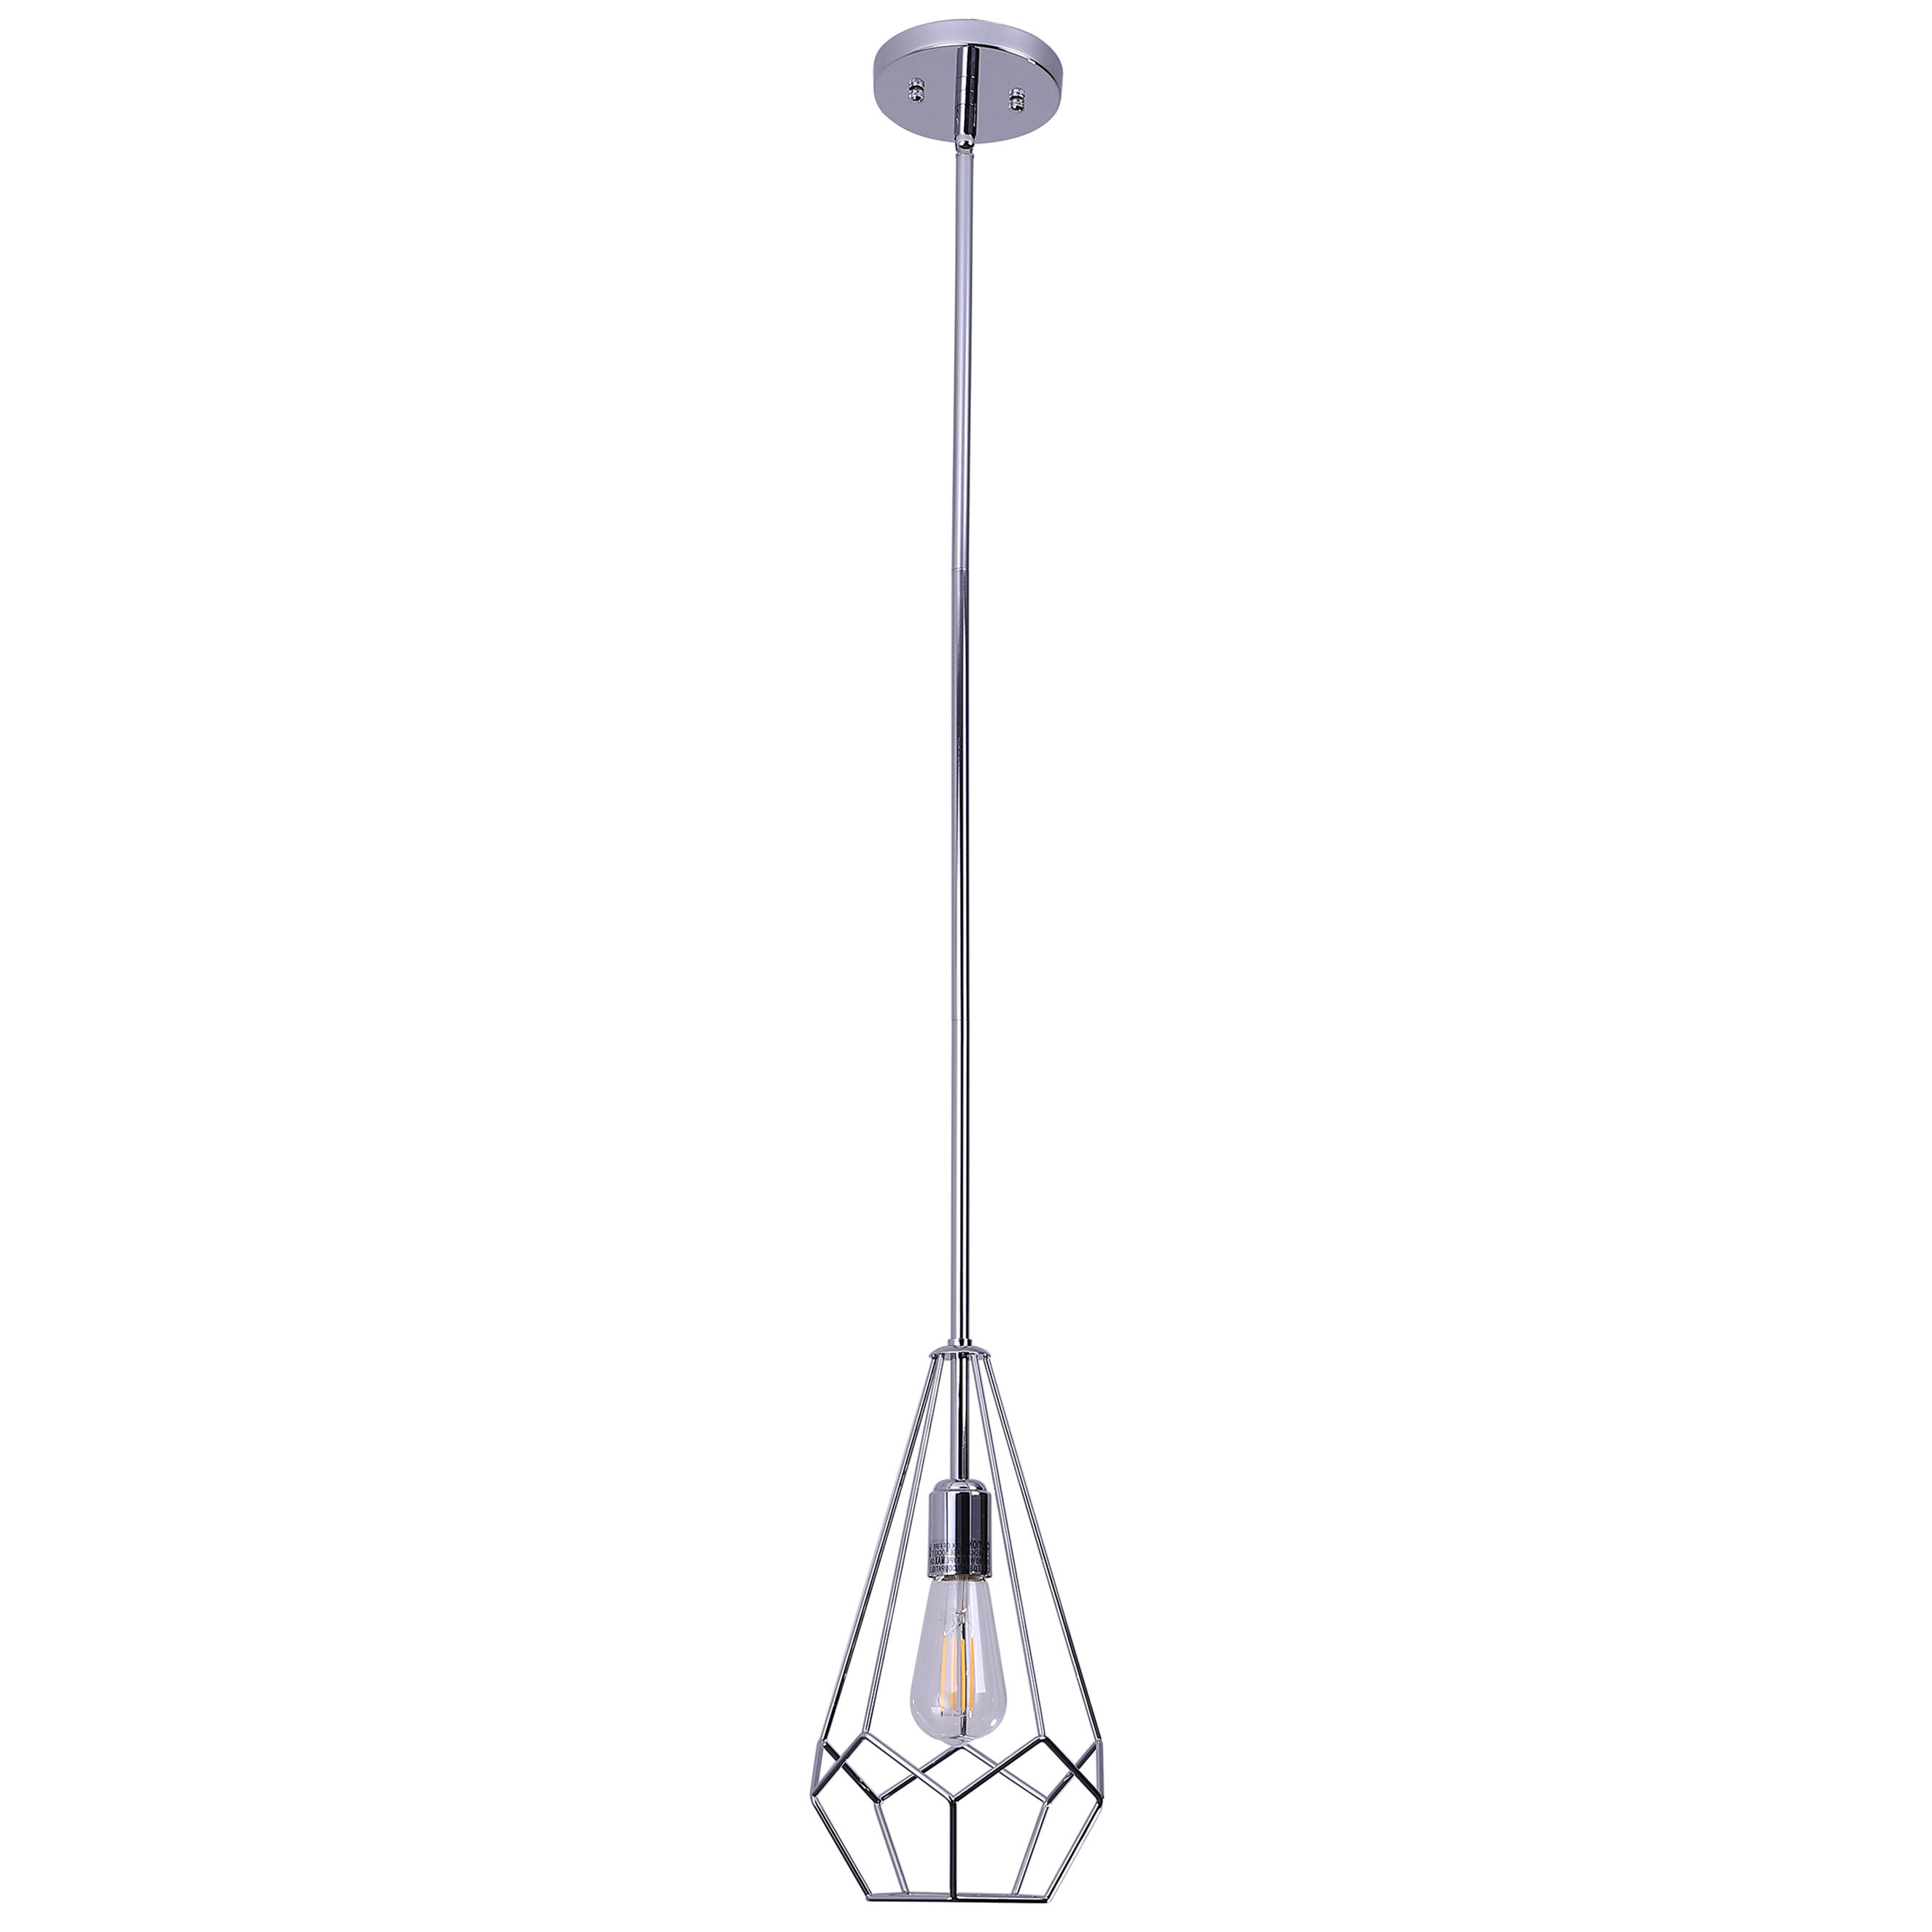 Rockland 4 Light Geometric Pendants Pertaining To Popular Shoreditch 1 Light Geometric Pendant (View 14 of 20)